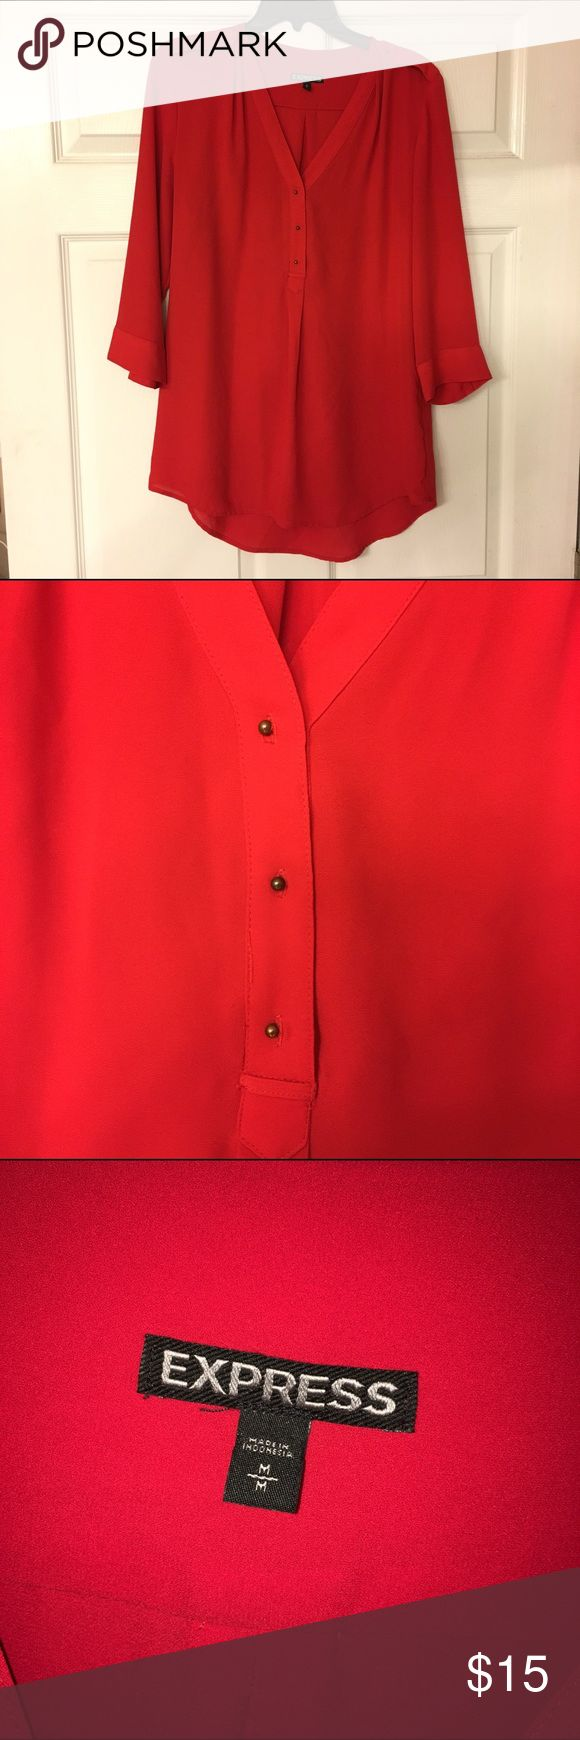 Express Red Tunic Blouse EUC. Loose fitting tunic shirt. Perfect for Valentine's Day coming up! Express Tops Blouses